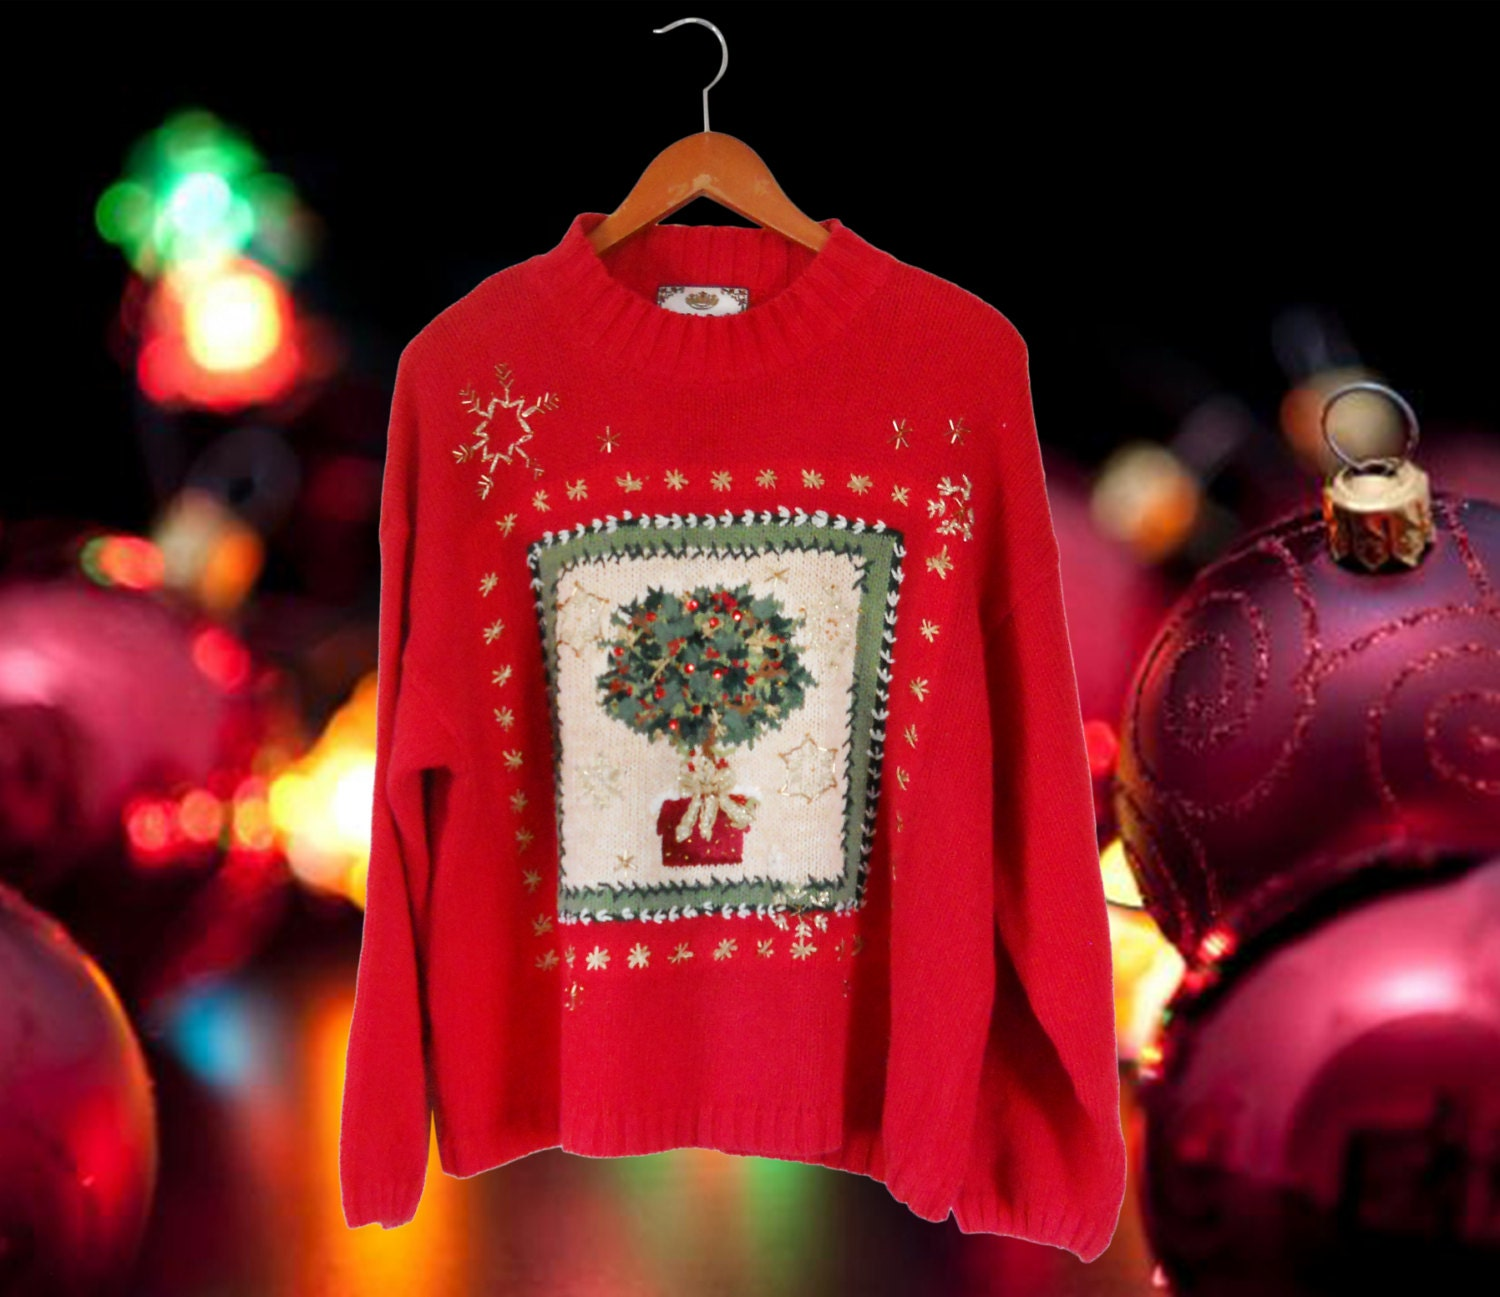 Ugly Christmas Party Sweaters: Women Ugly Christmas Sweater Party Ugly Holiday Sweater Tacky